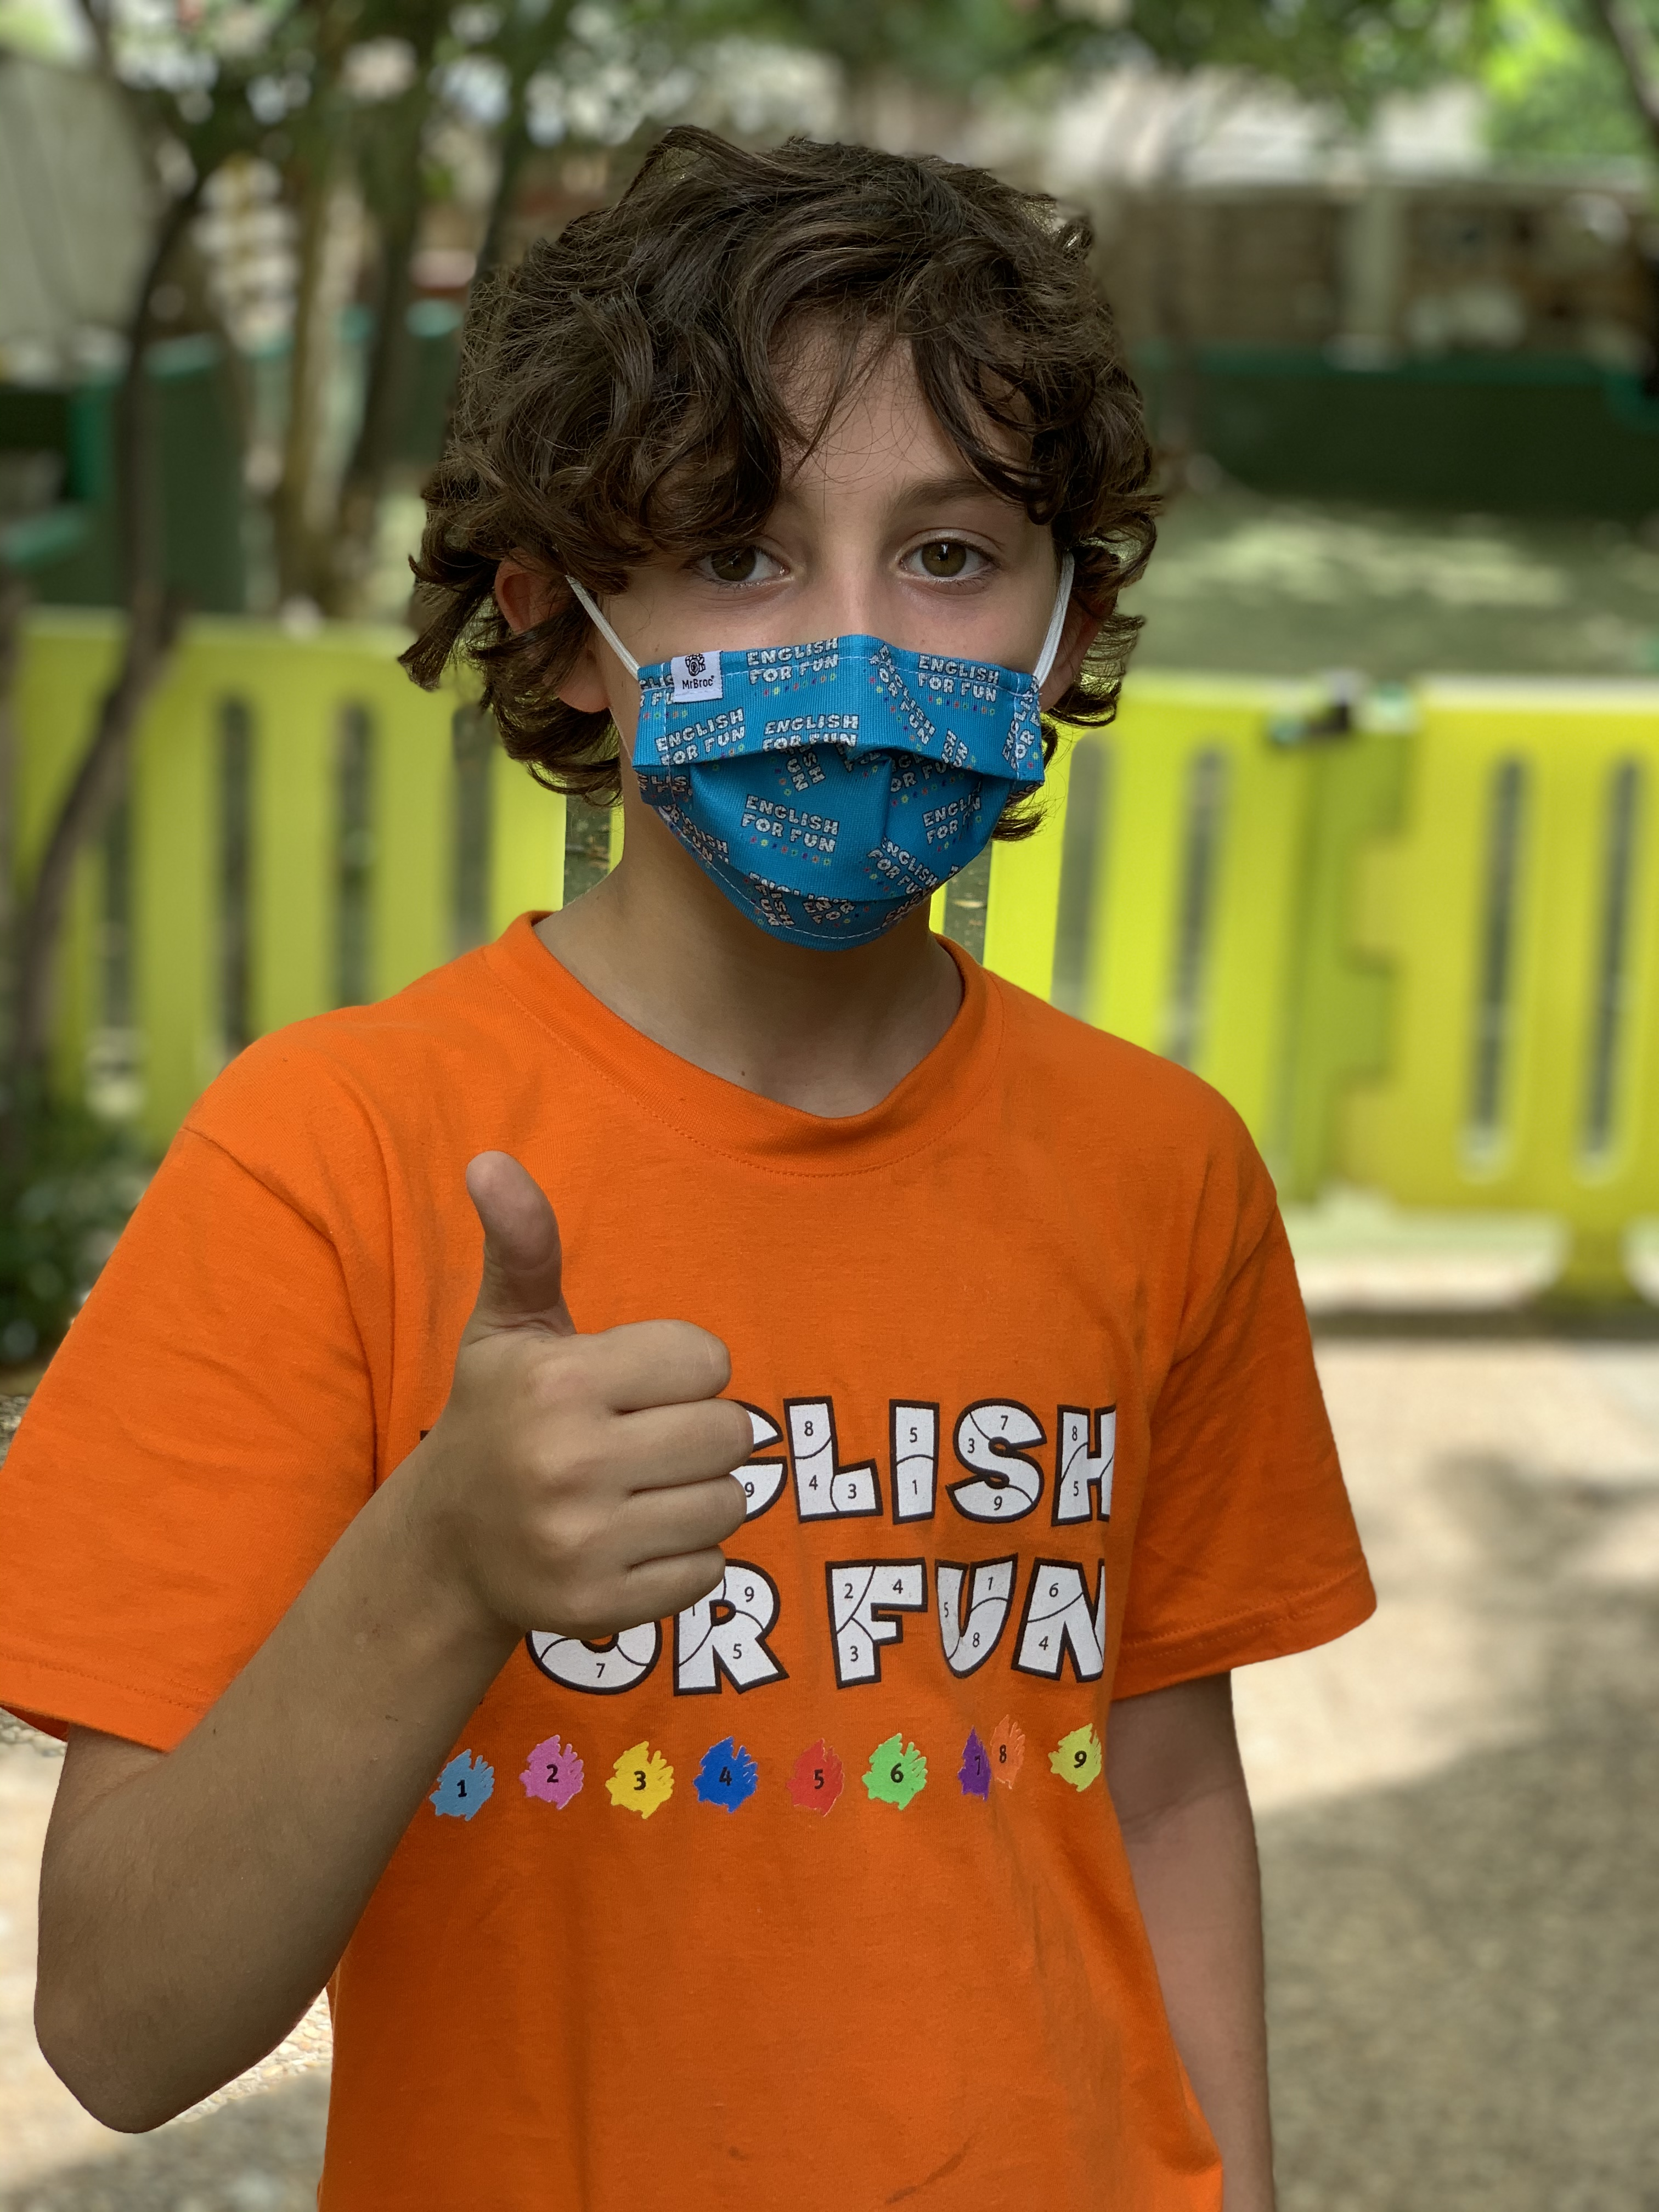 Rodrigo has been at camp since he was 4 years old and how he is preparing to be a junior counselor